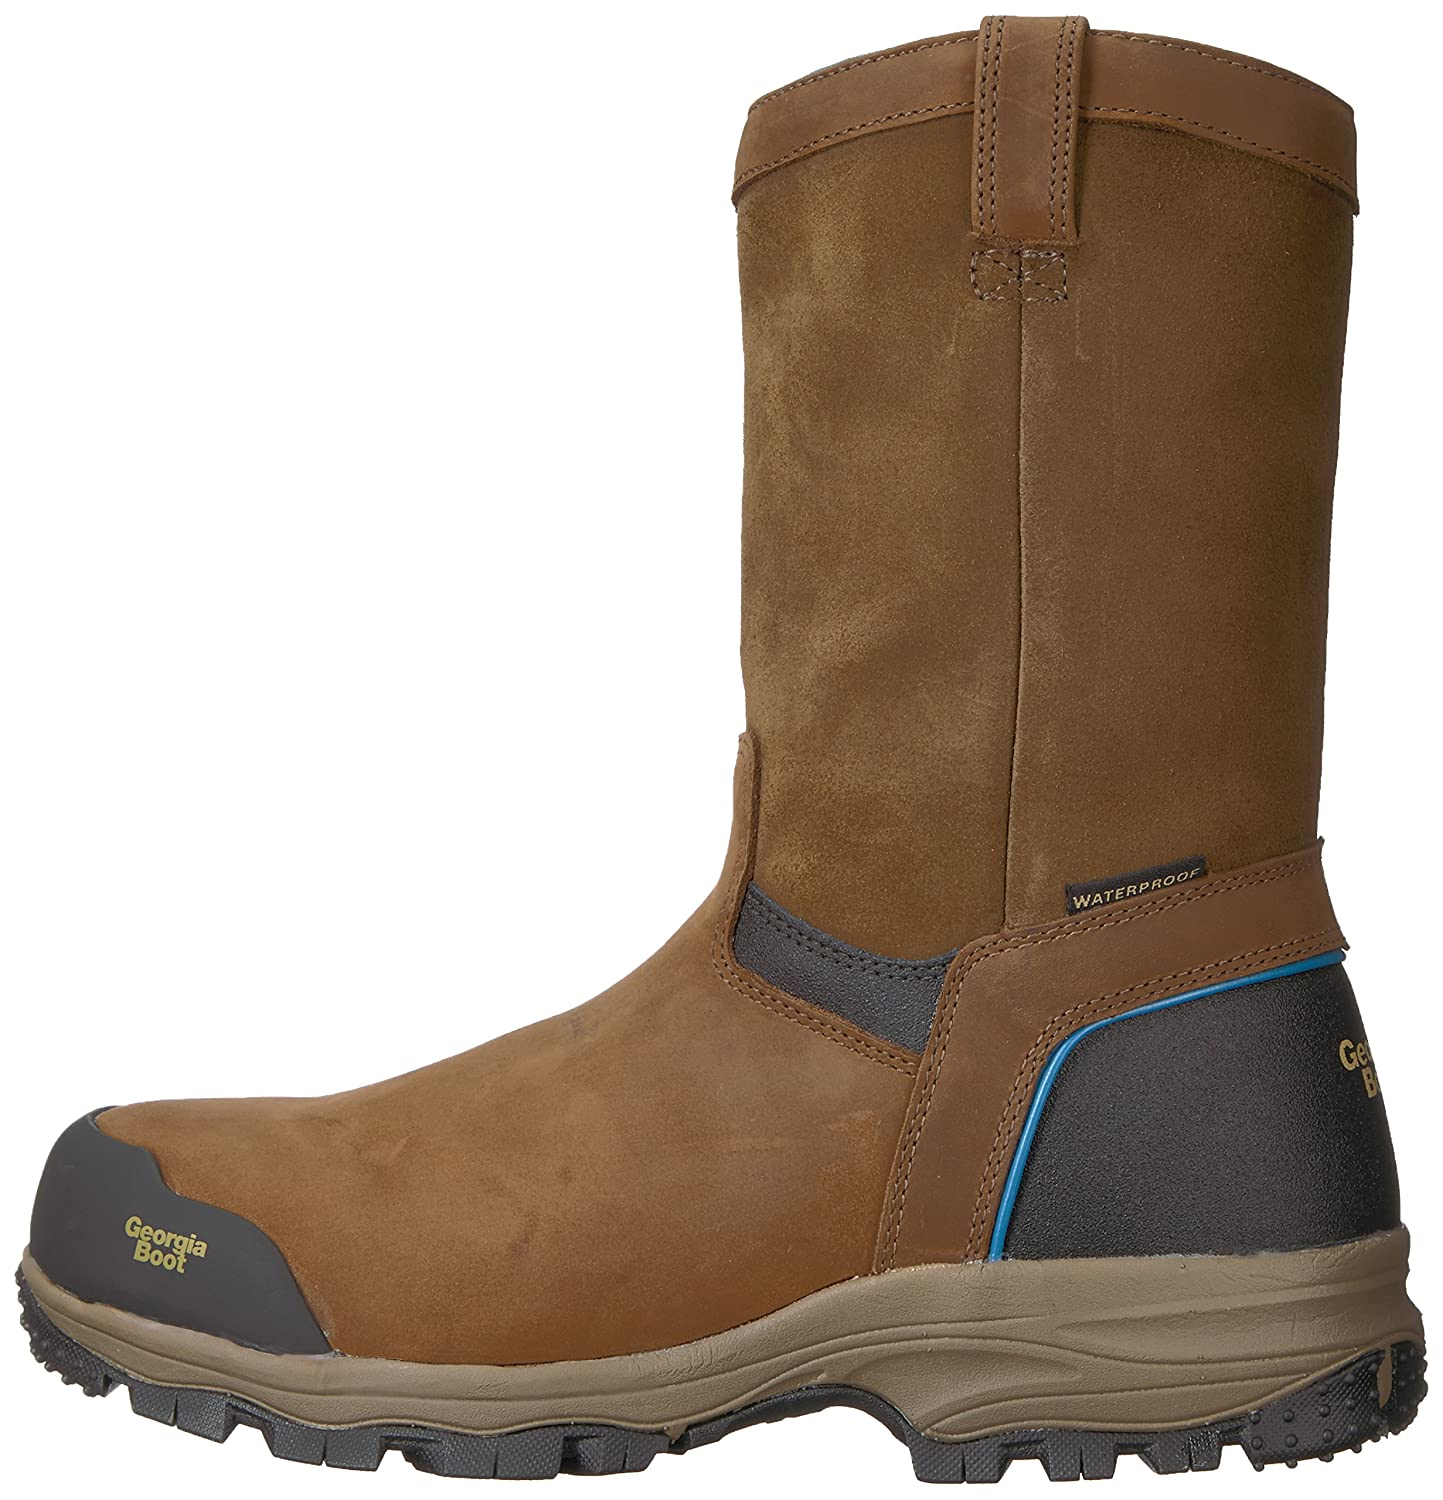 Georgia GB00105 Mid Calf US|Dark Boot B01F7ORWB8 9 W US|Dark Calf Brown d490f4